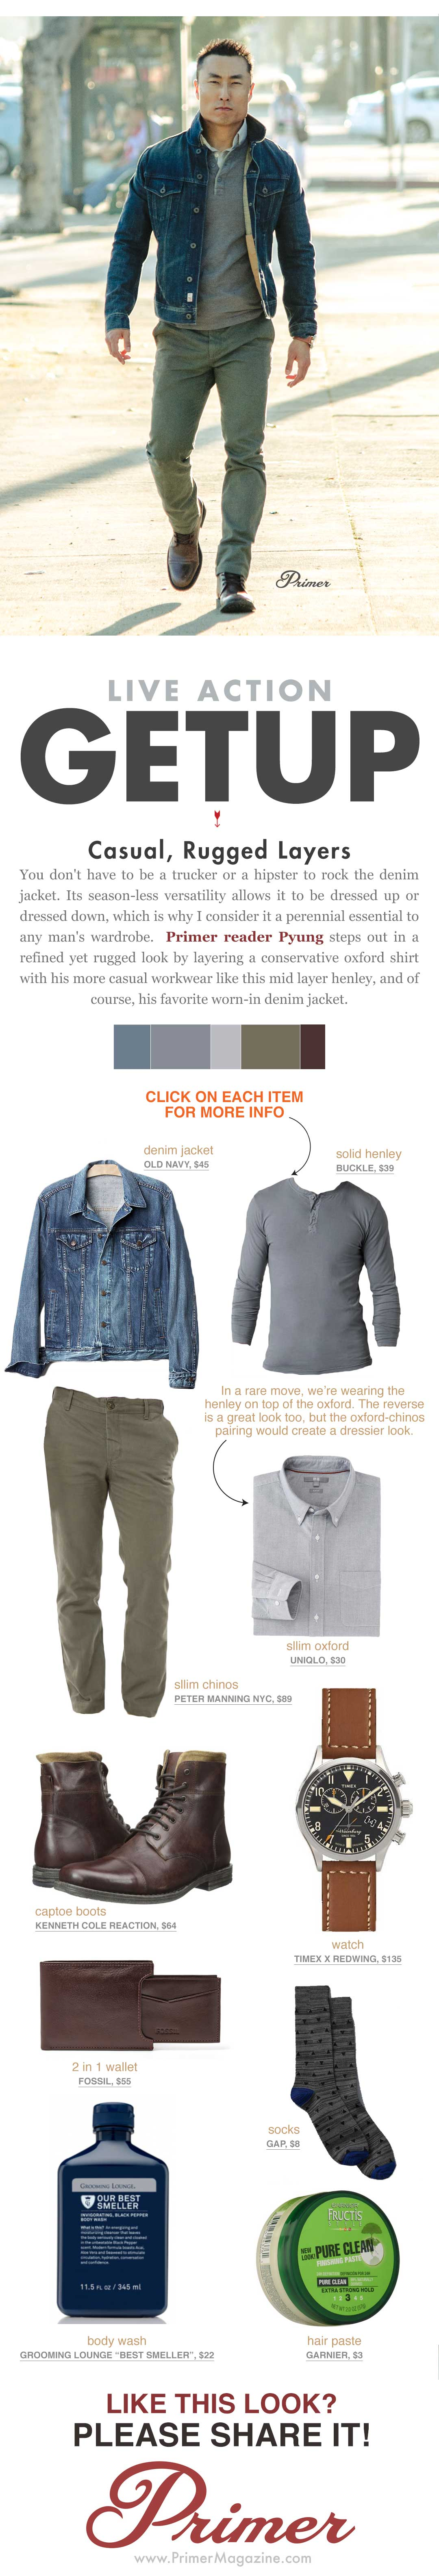 Rugged, Casual winter outfit for men - Shop the look at PrimerMagazine.com